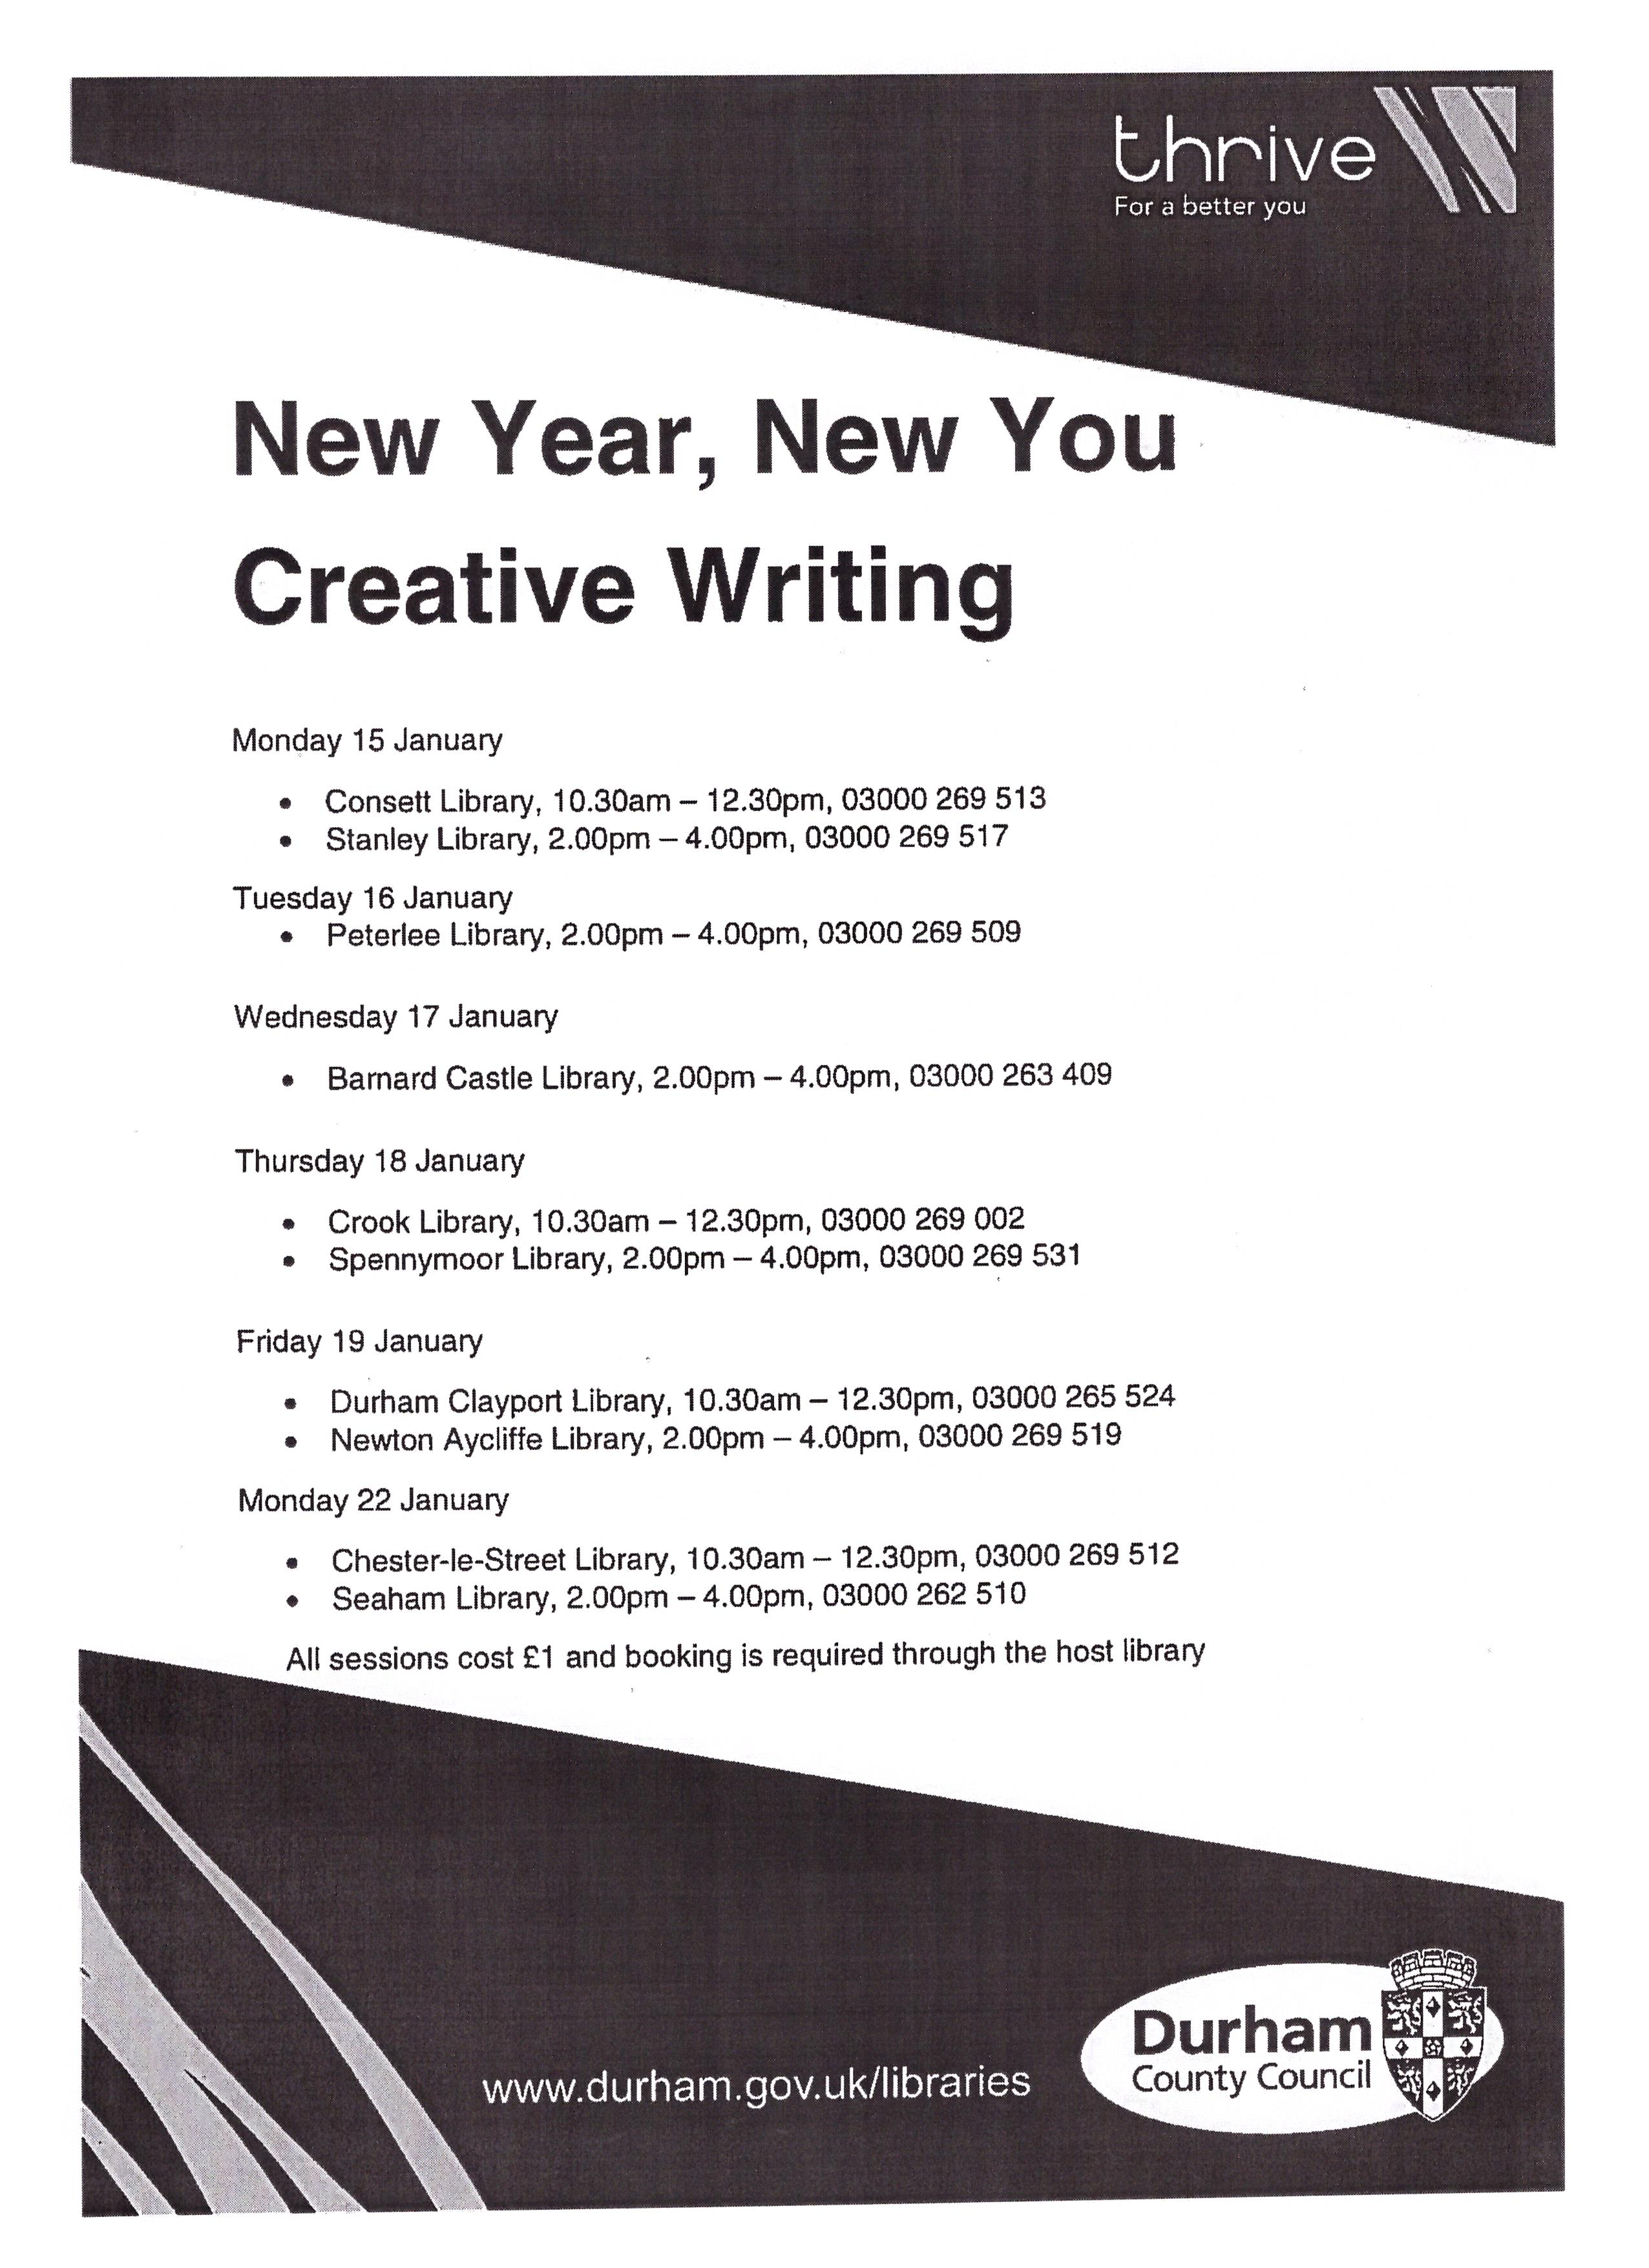 New Year, New You: creative writing sessions at County Durham ...